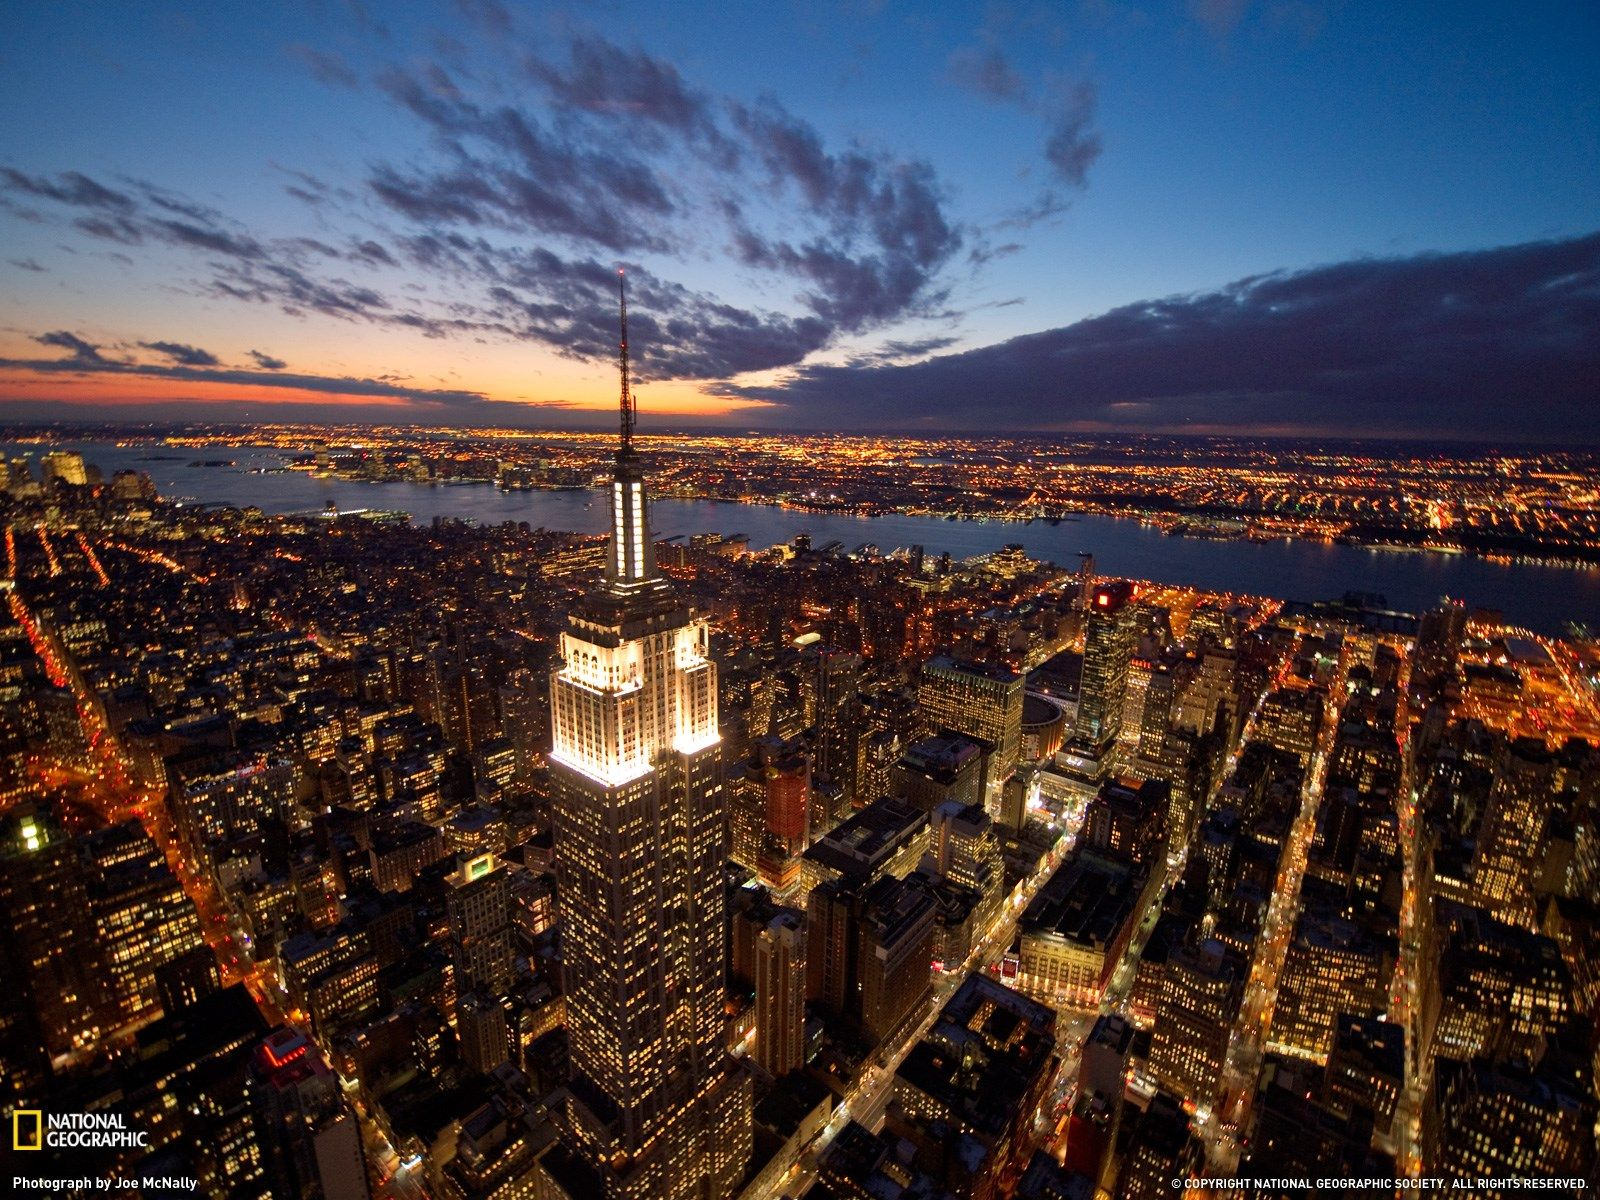 Simple Wallpaper Night Empire State Building - b109518565ac10d57526aec8a36a96e2  You Should Have-863284.jpg